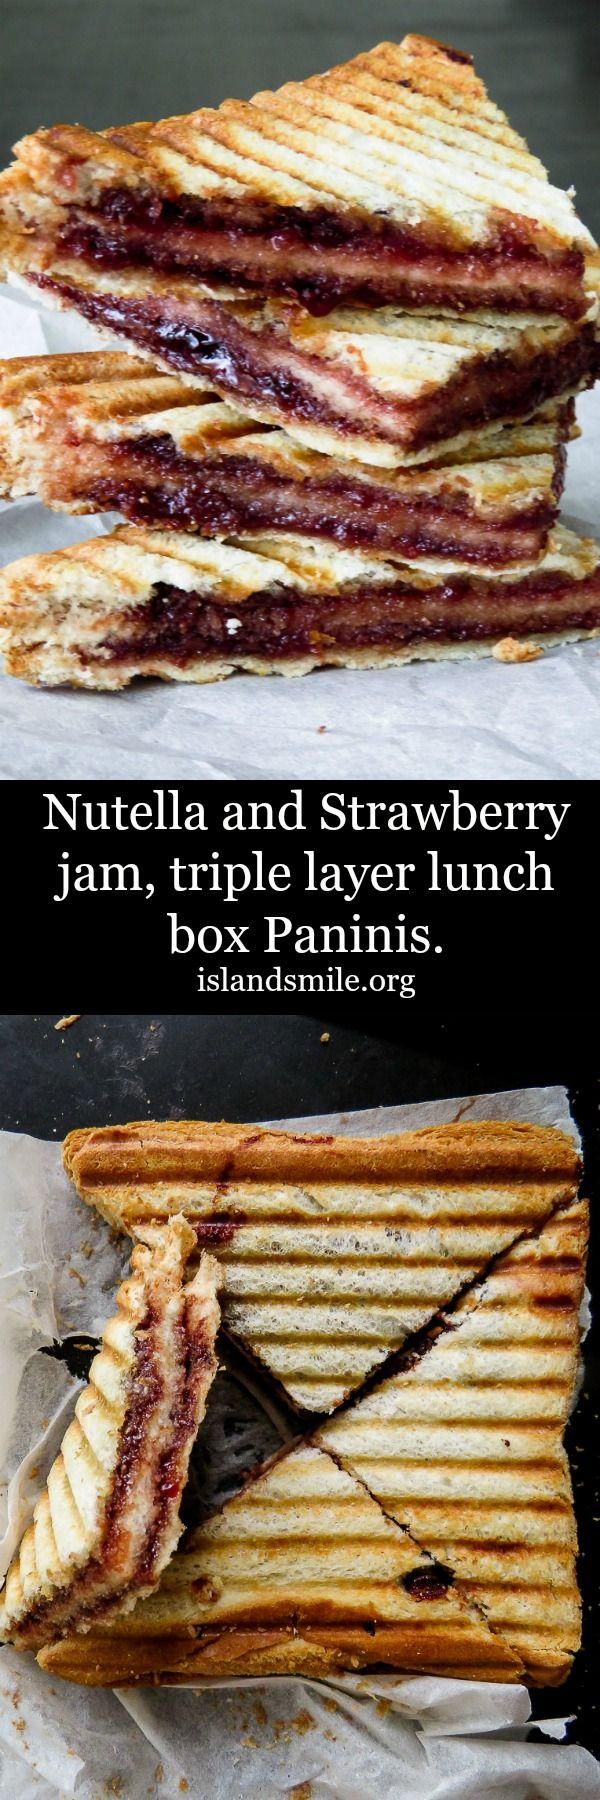 Nutella and Strawberry jam, triple layer Panini can be a fun breakfast  for the kids to have on weekends or for the Nutella loving adult just like you.